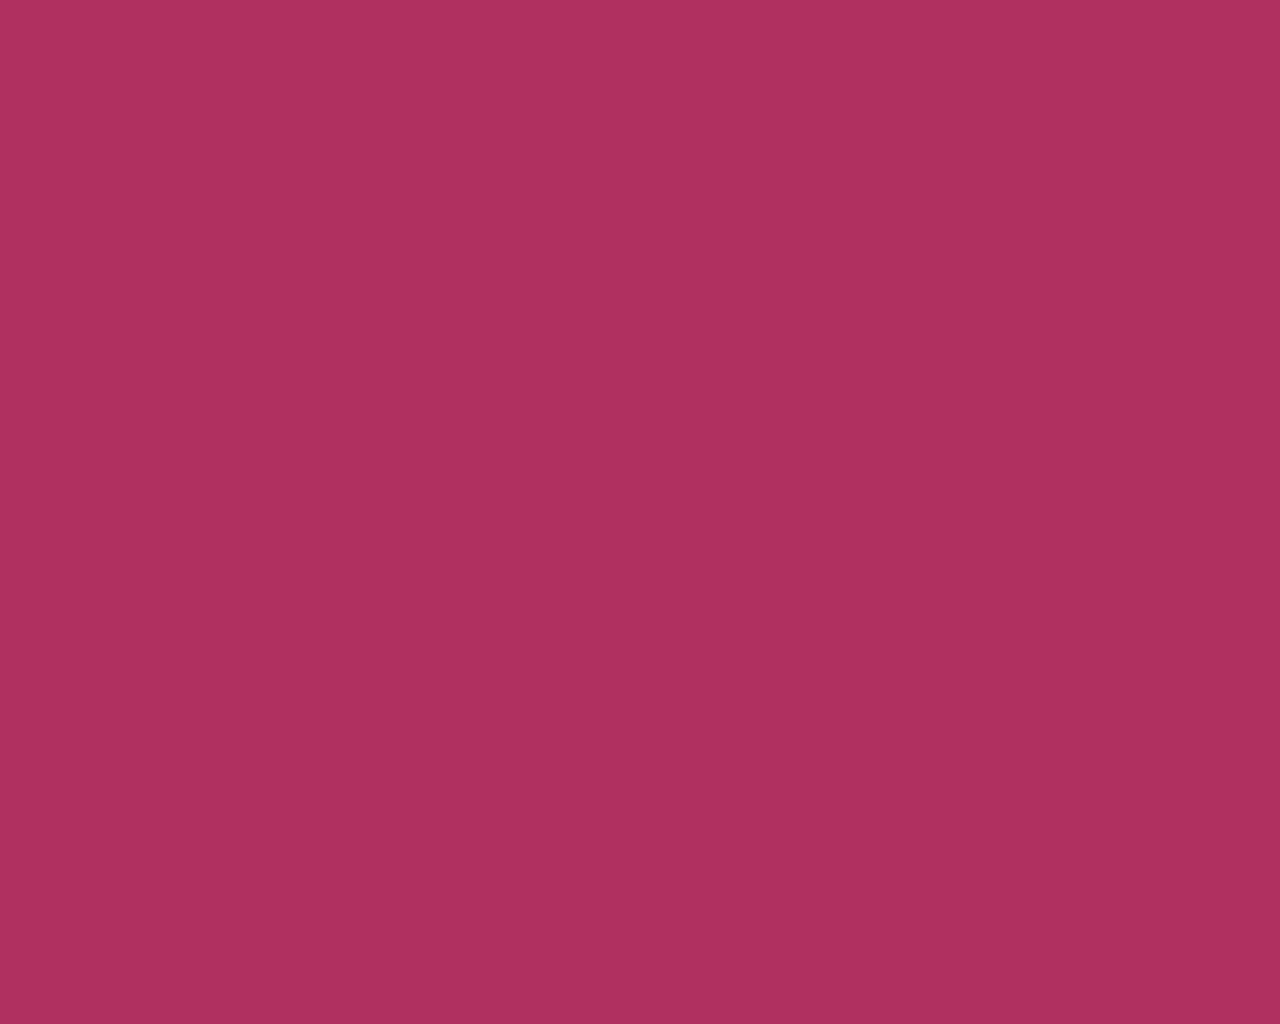 1280x1024 Maroon X11 Gui Solid Color Background